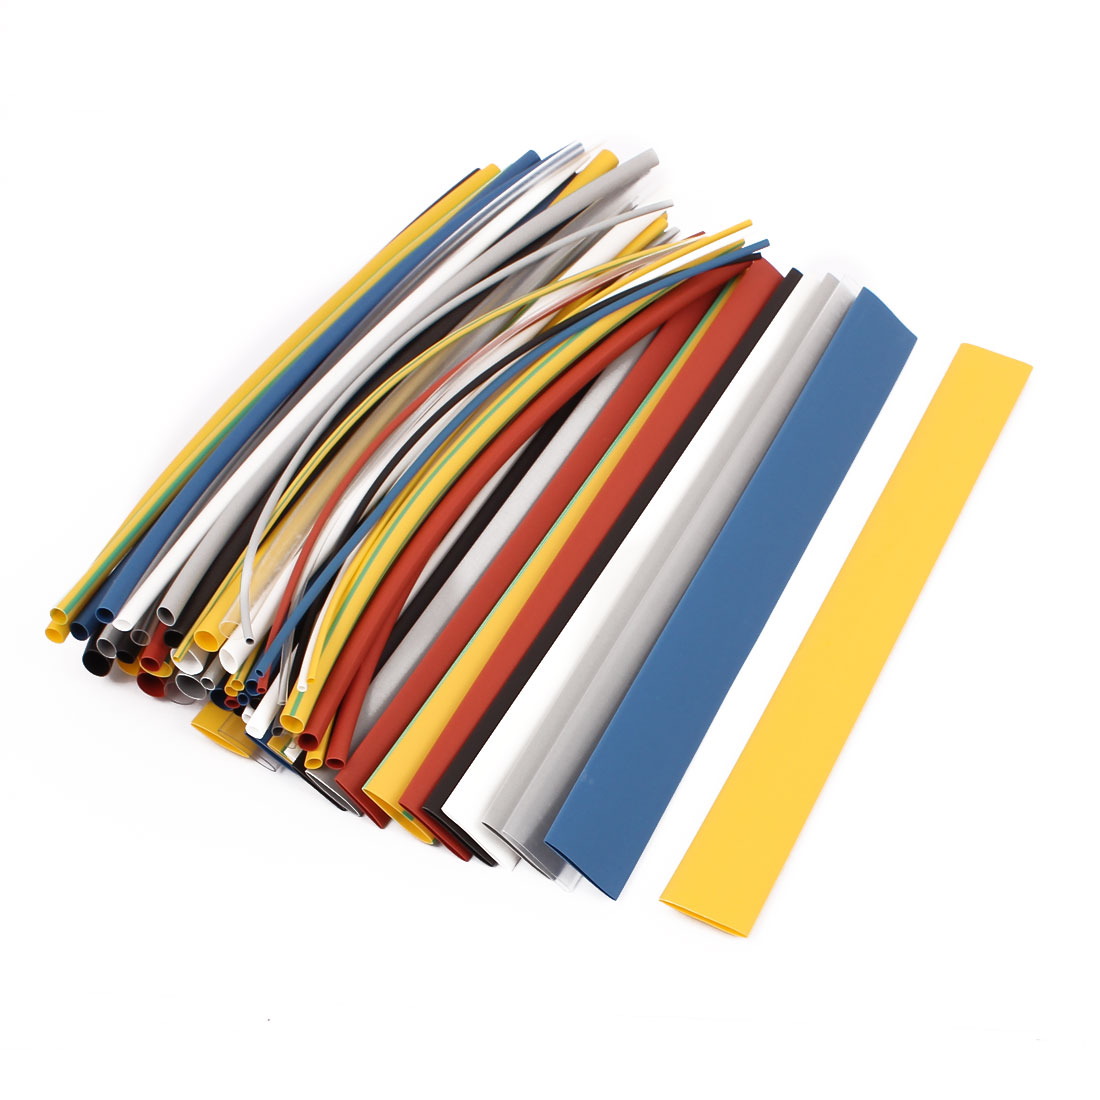 64 Pcs Heatshrinkable Cable Tubing Tube Sleeving Wrap Assorted Sizes Kit - image 2 of 2